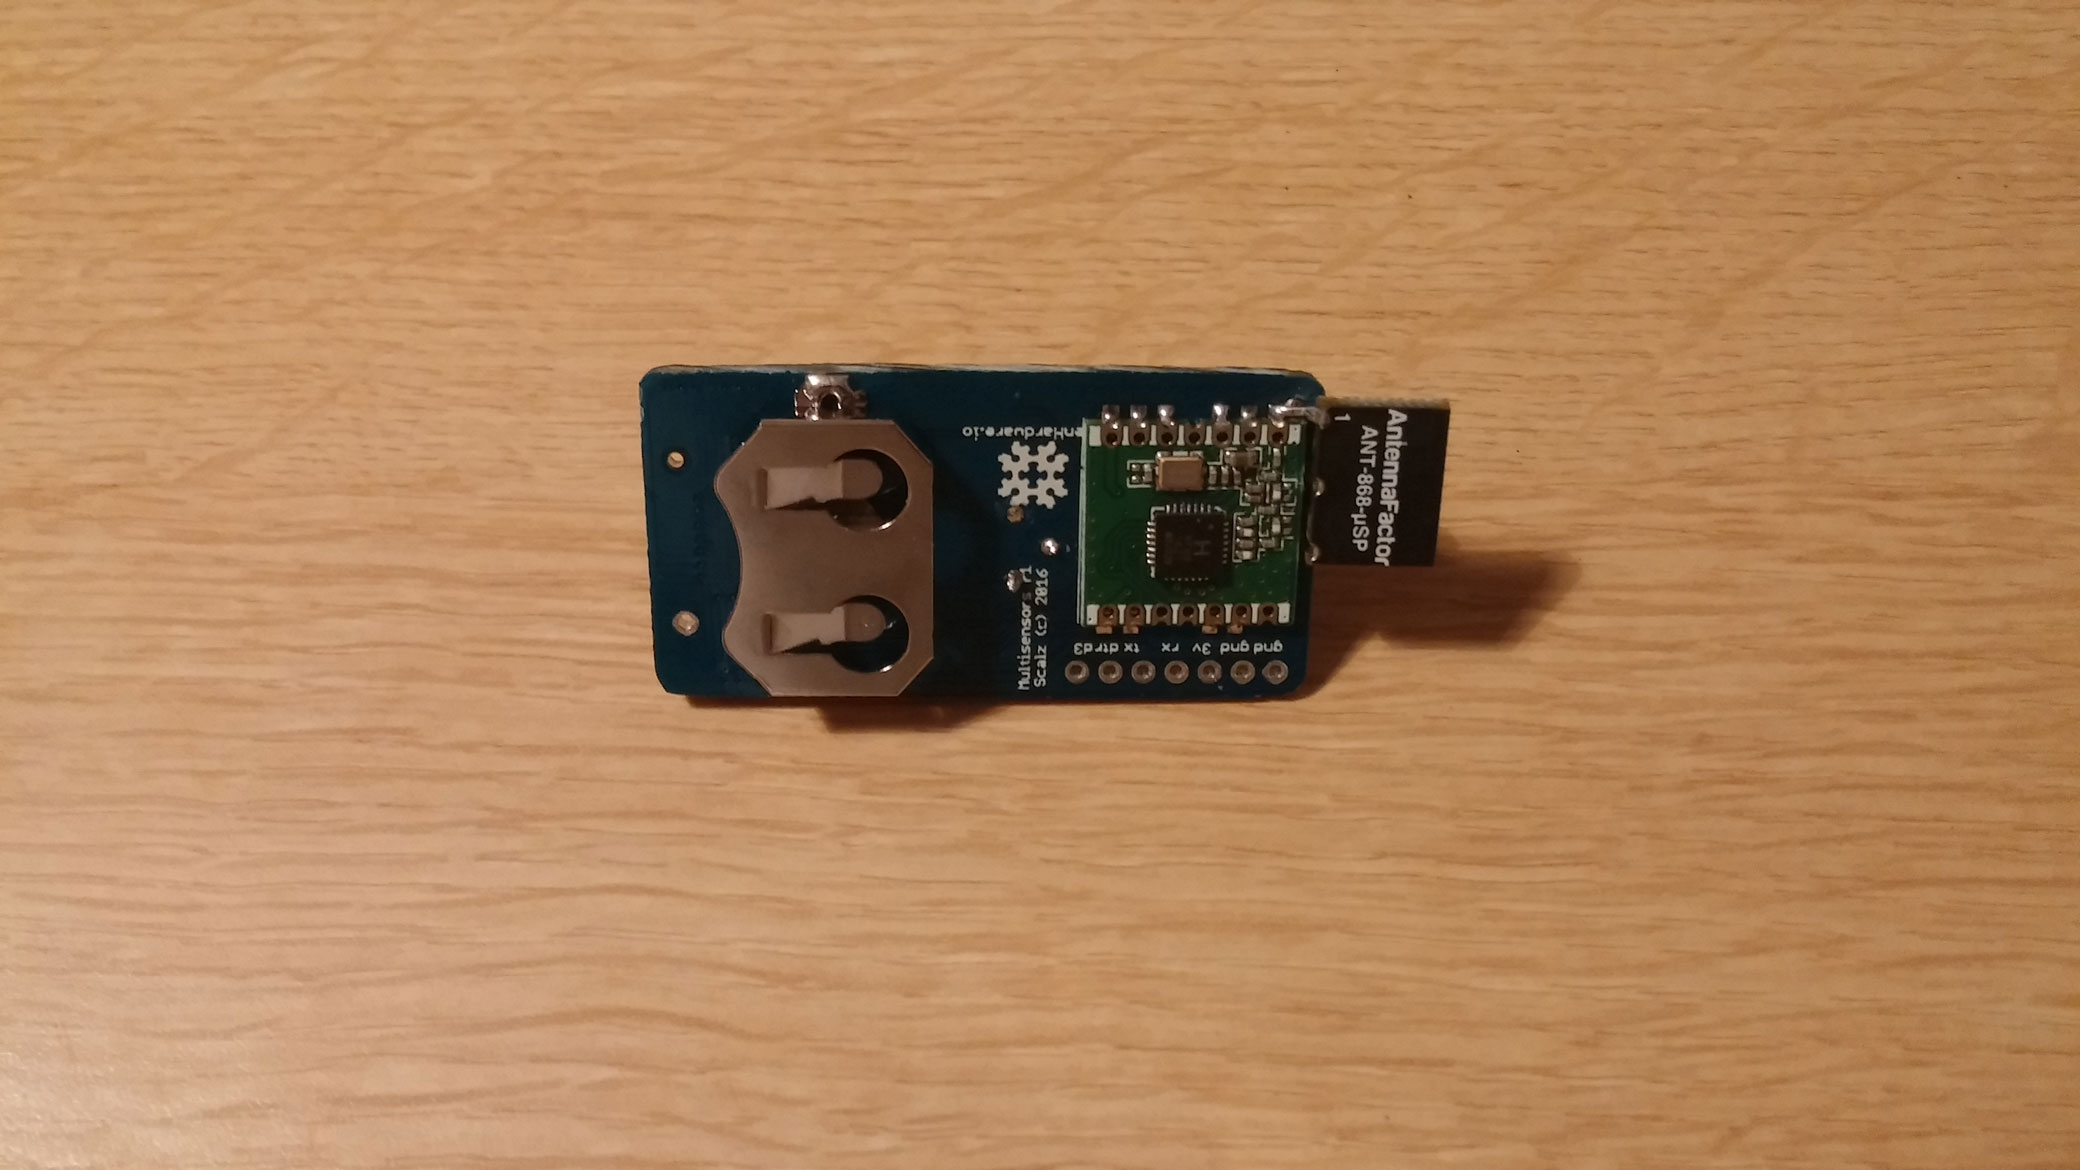 Best Posts Made By Scalz Mysensors Forum Lowcost Shipment Shock Sensor Using A 6pin Sot23 Microcontroller 0 1474116860159 20160915 212143